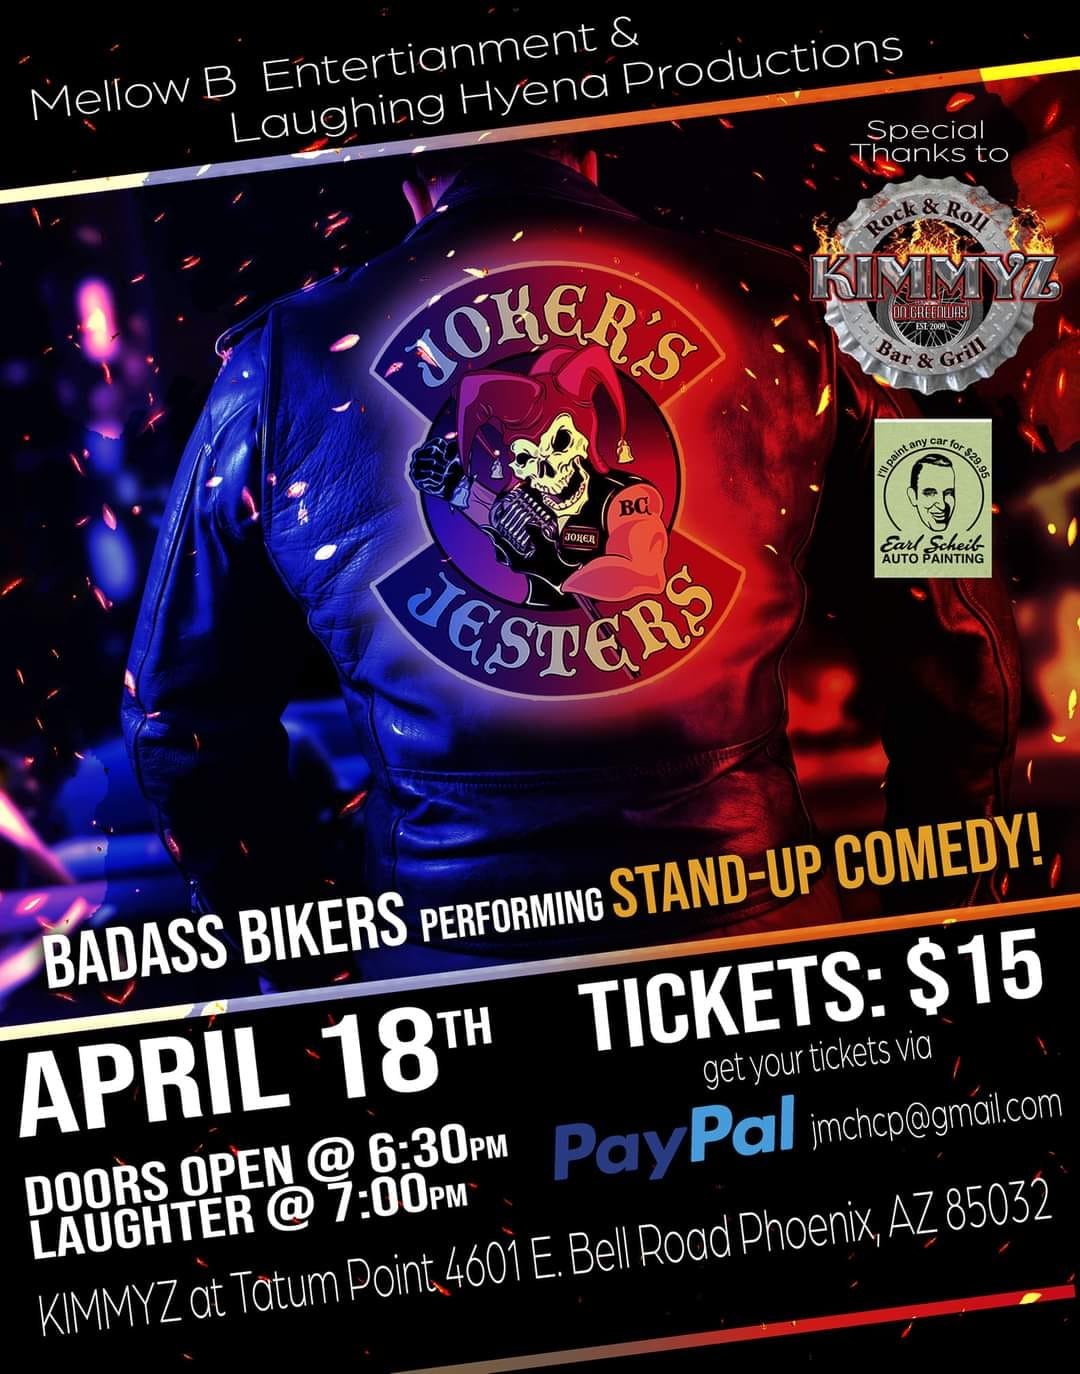 Sunday April 18th 2021 Jokers Jesture Comedy Show at Kimmyz Tatum Point